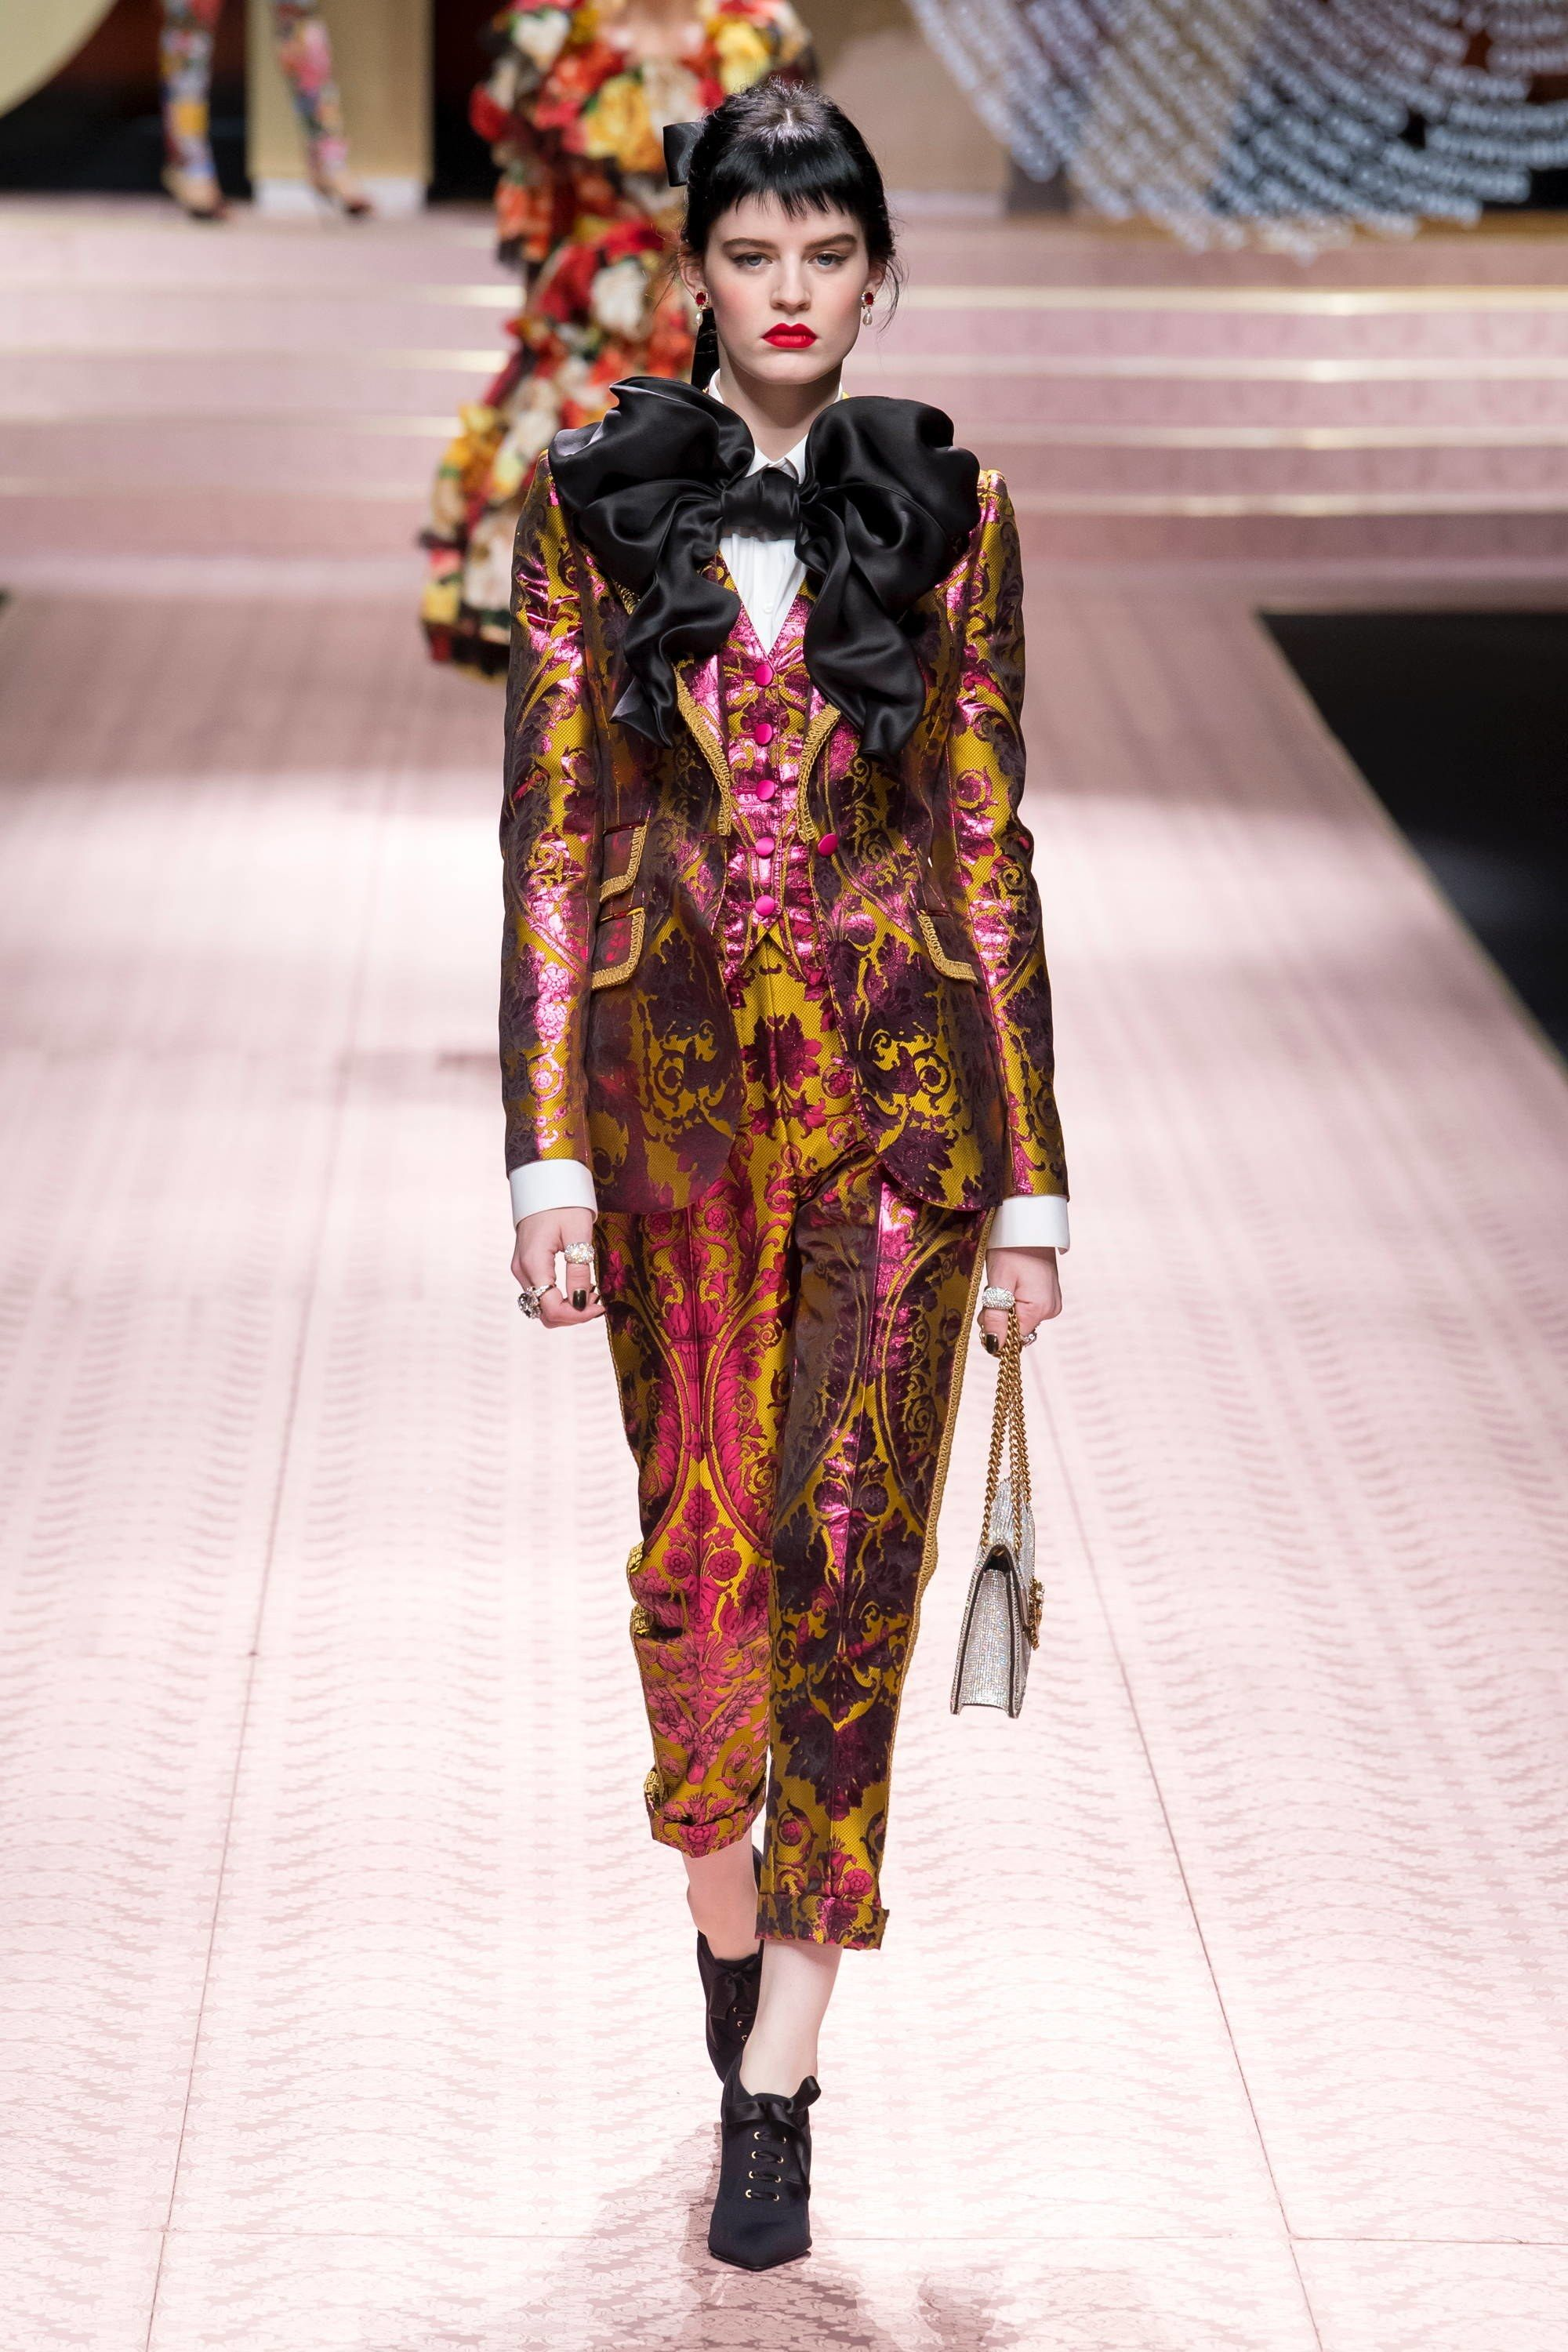 fa4968ef97b3 Dolce   Gabbana Spring 2019 Ready-to-Wear Collection - Vogue